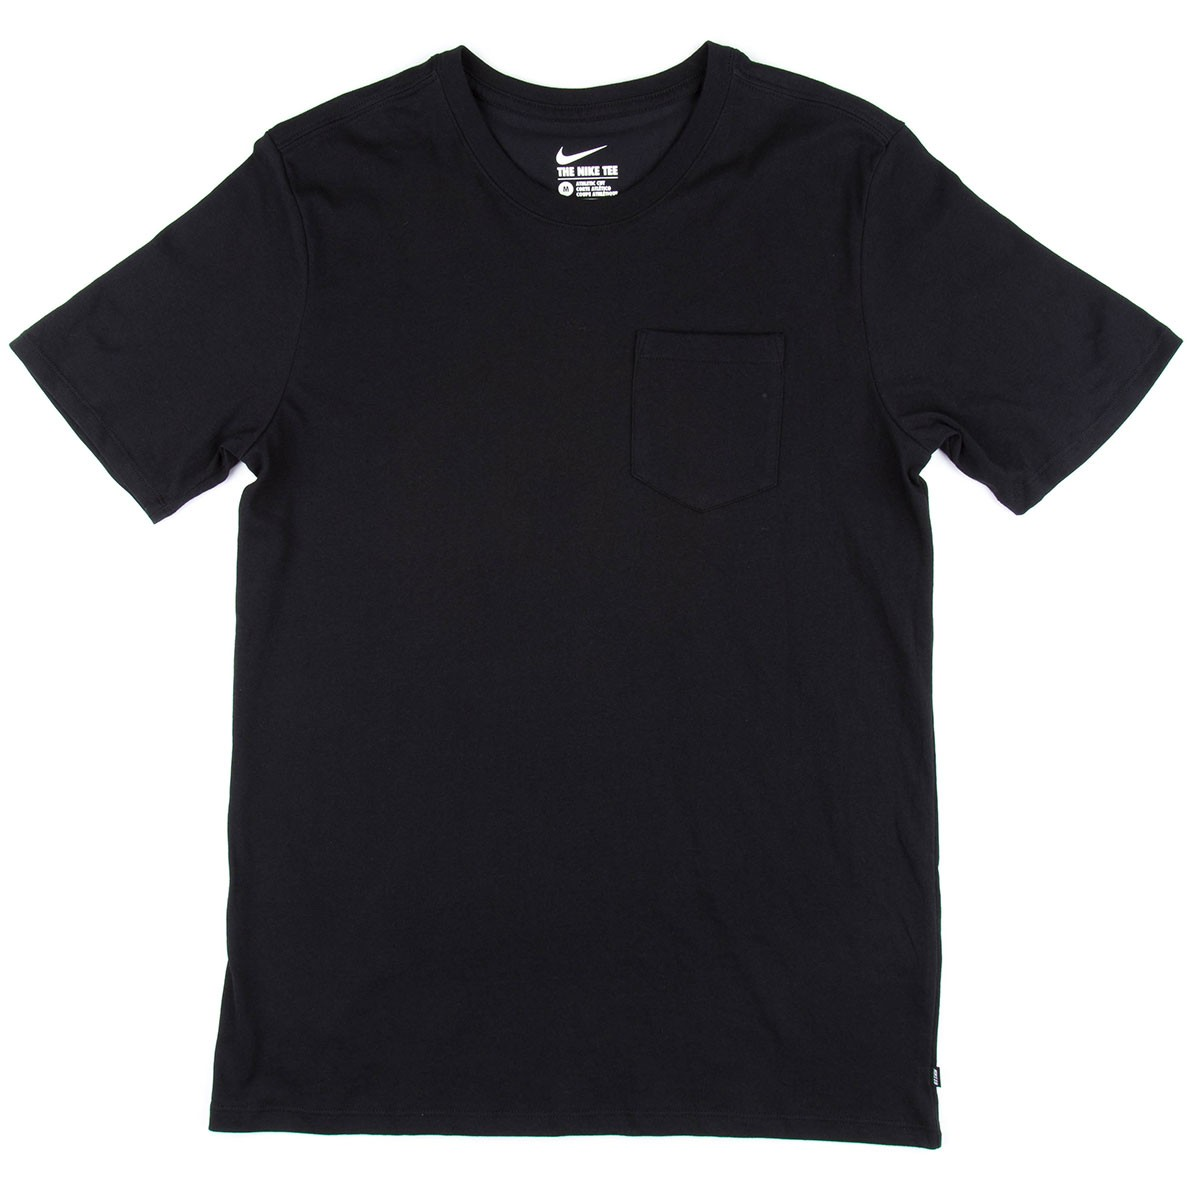 Solid Black Shirt | Is Shirt